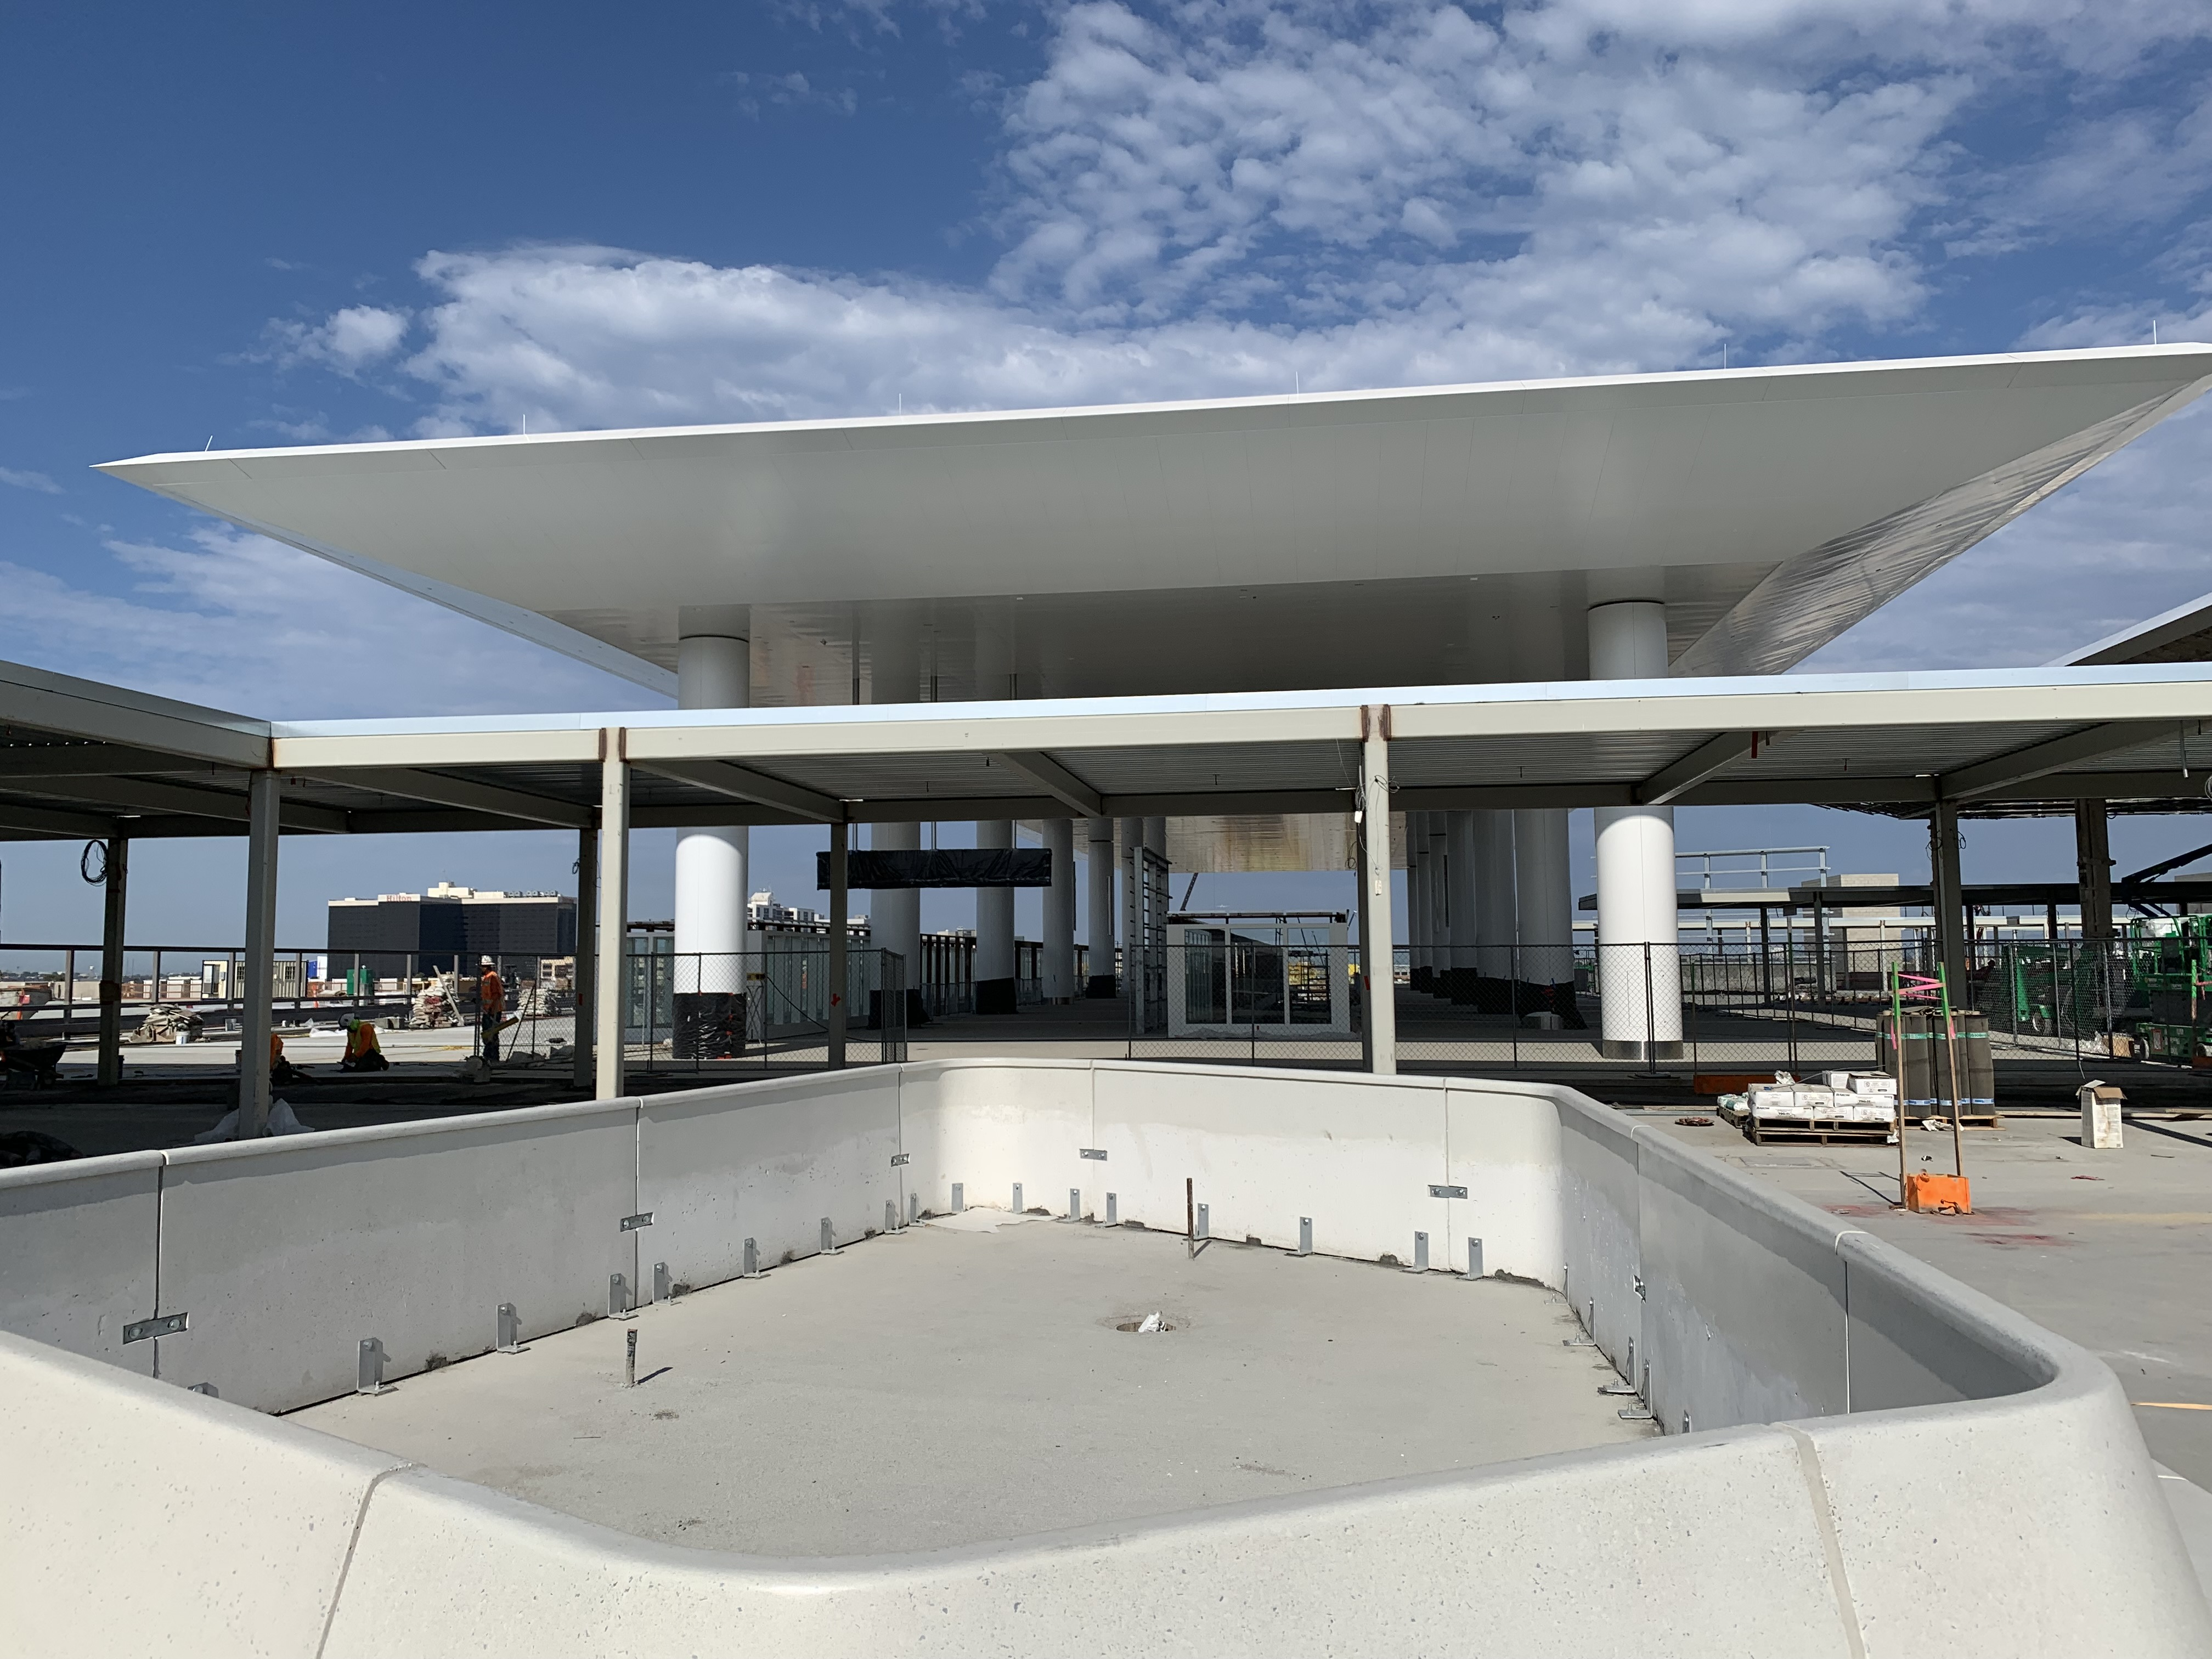 A precast planter bench, in front of the Automated People Mover station, on the top level of the Consolidated Rent-A-Car facility's Ready Return building.